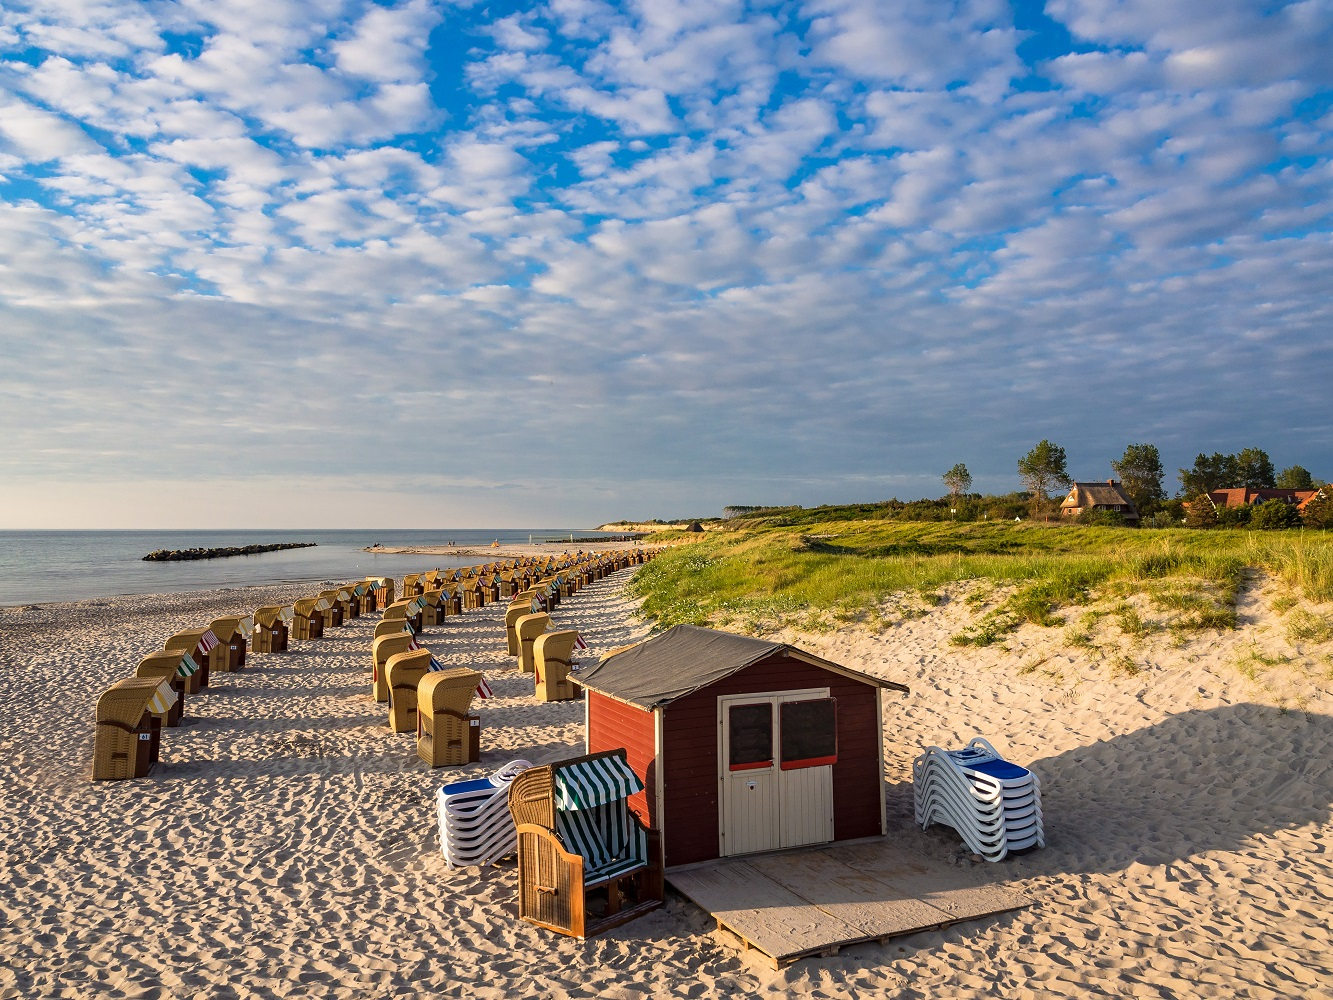 Campingziel Nummer 1: Ostsee